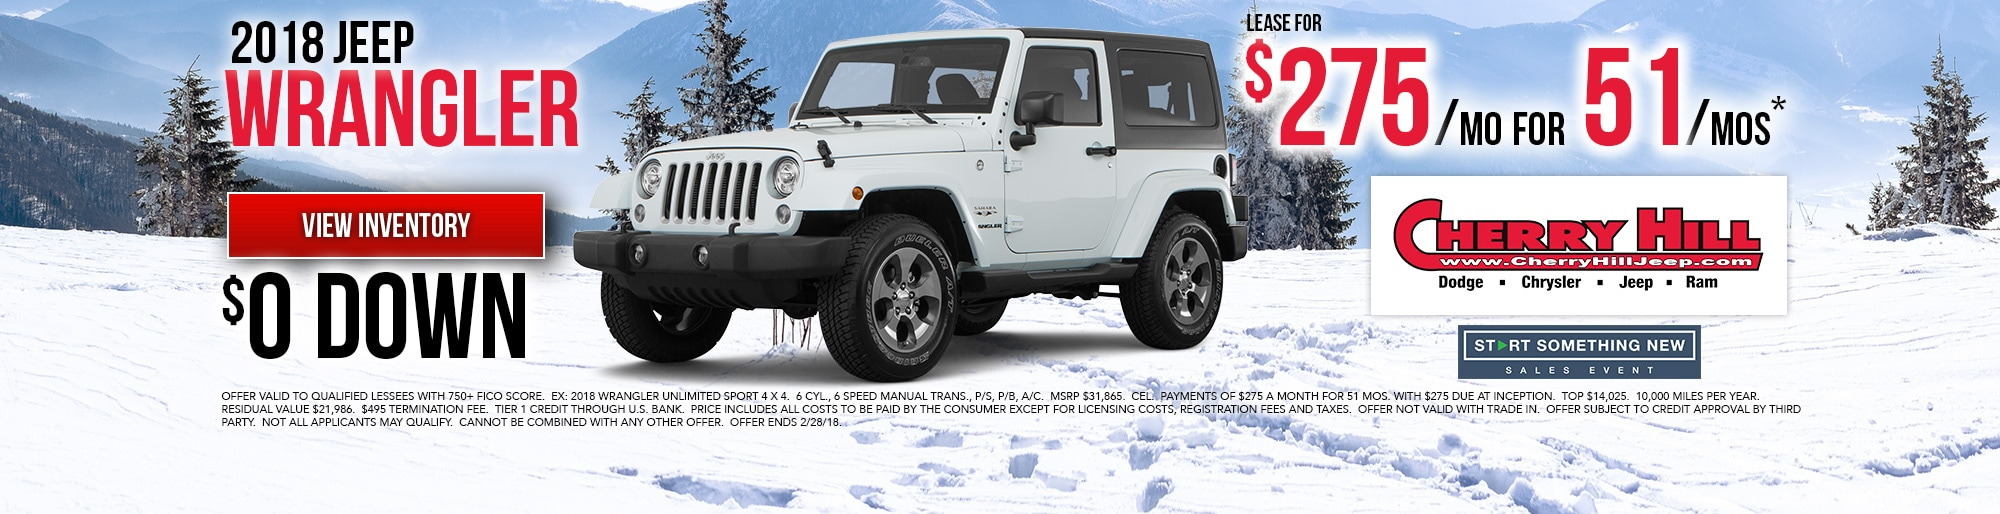 Cherry Hill Dodge Chrysler Jeep RAM   New & Used Cars for Sale serving Philadelphia, and South ...